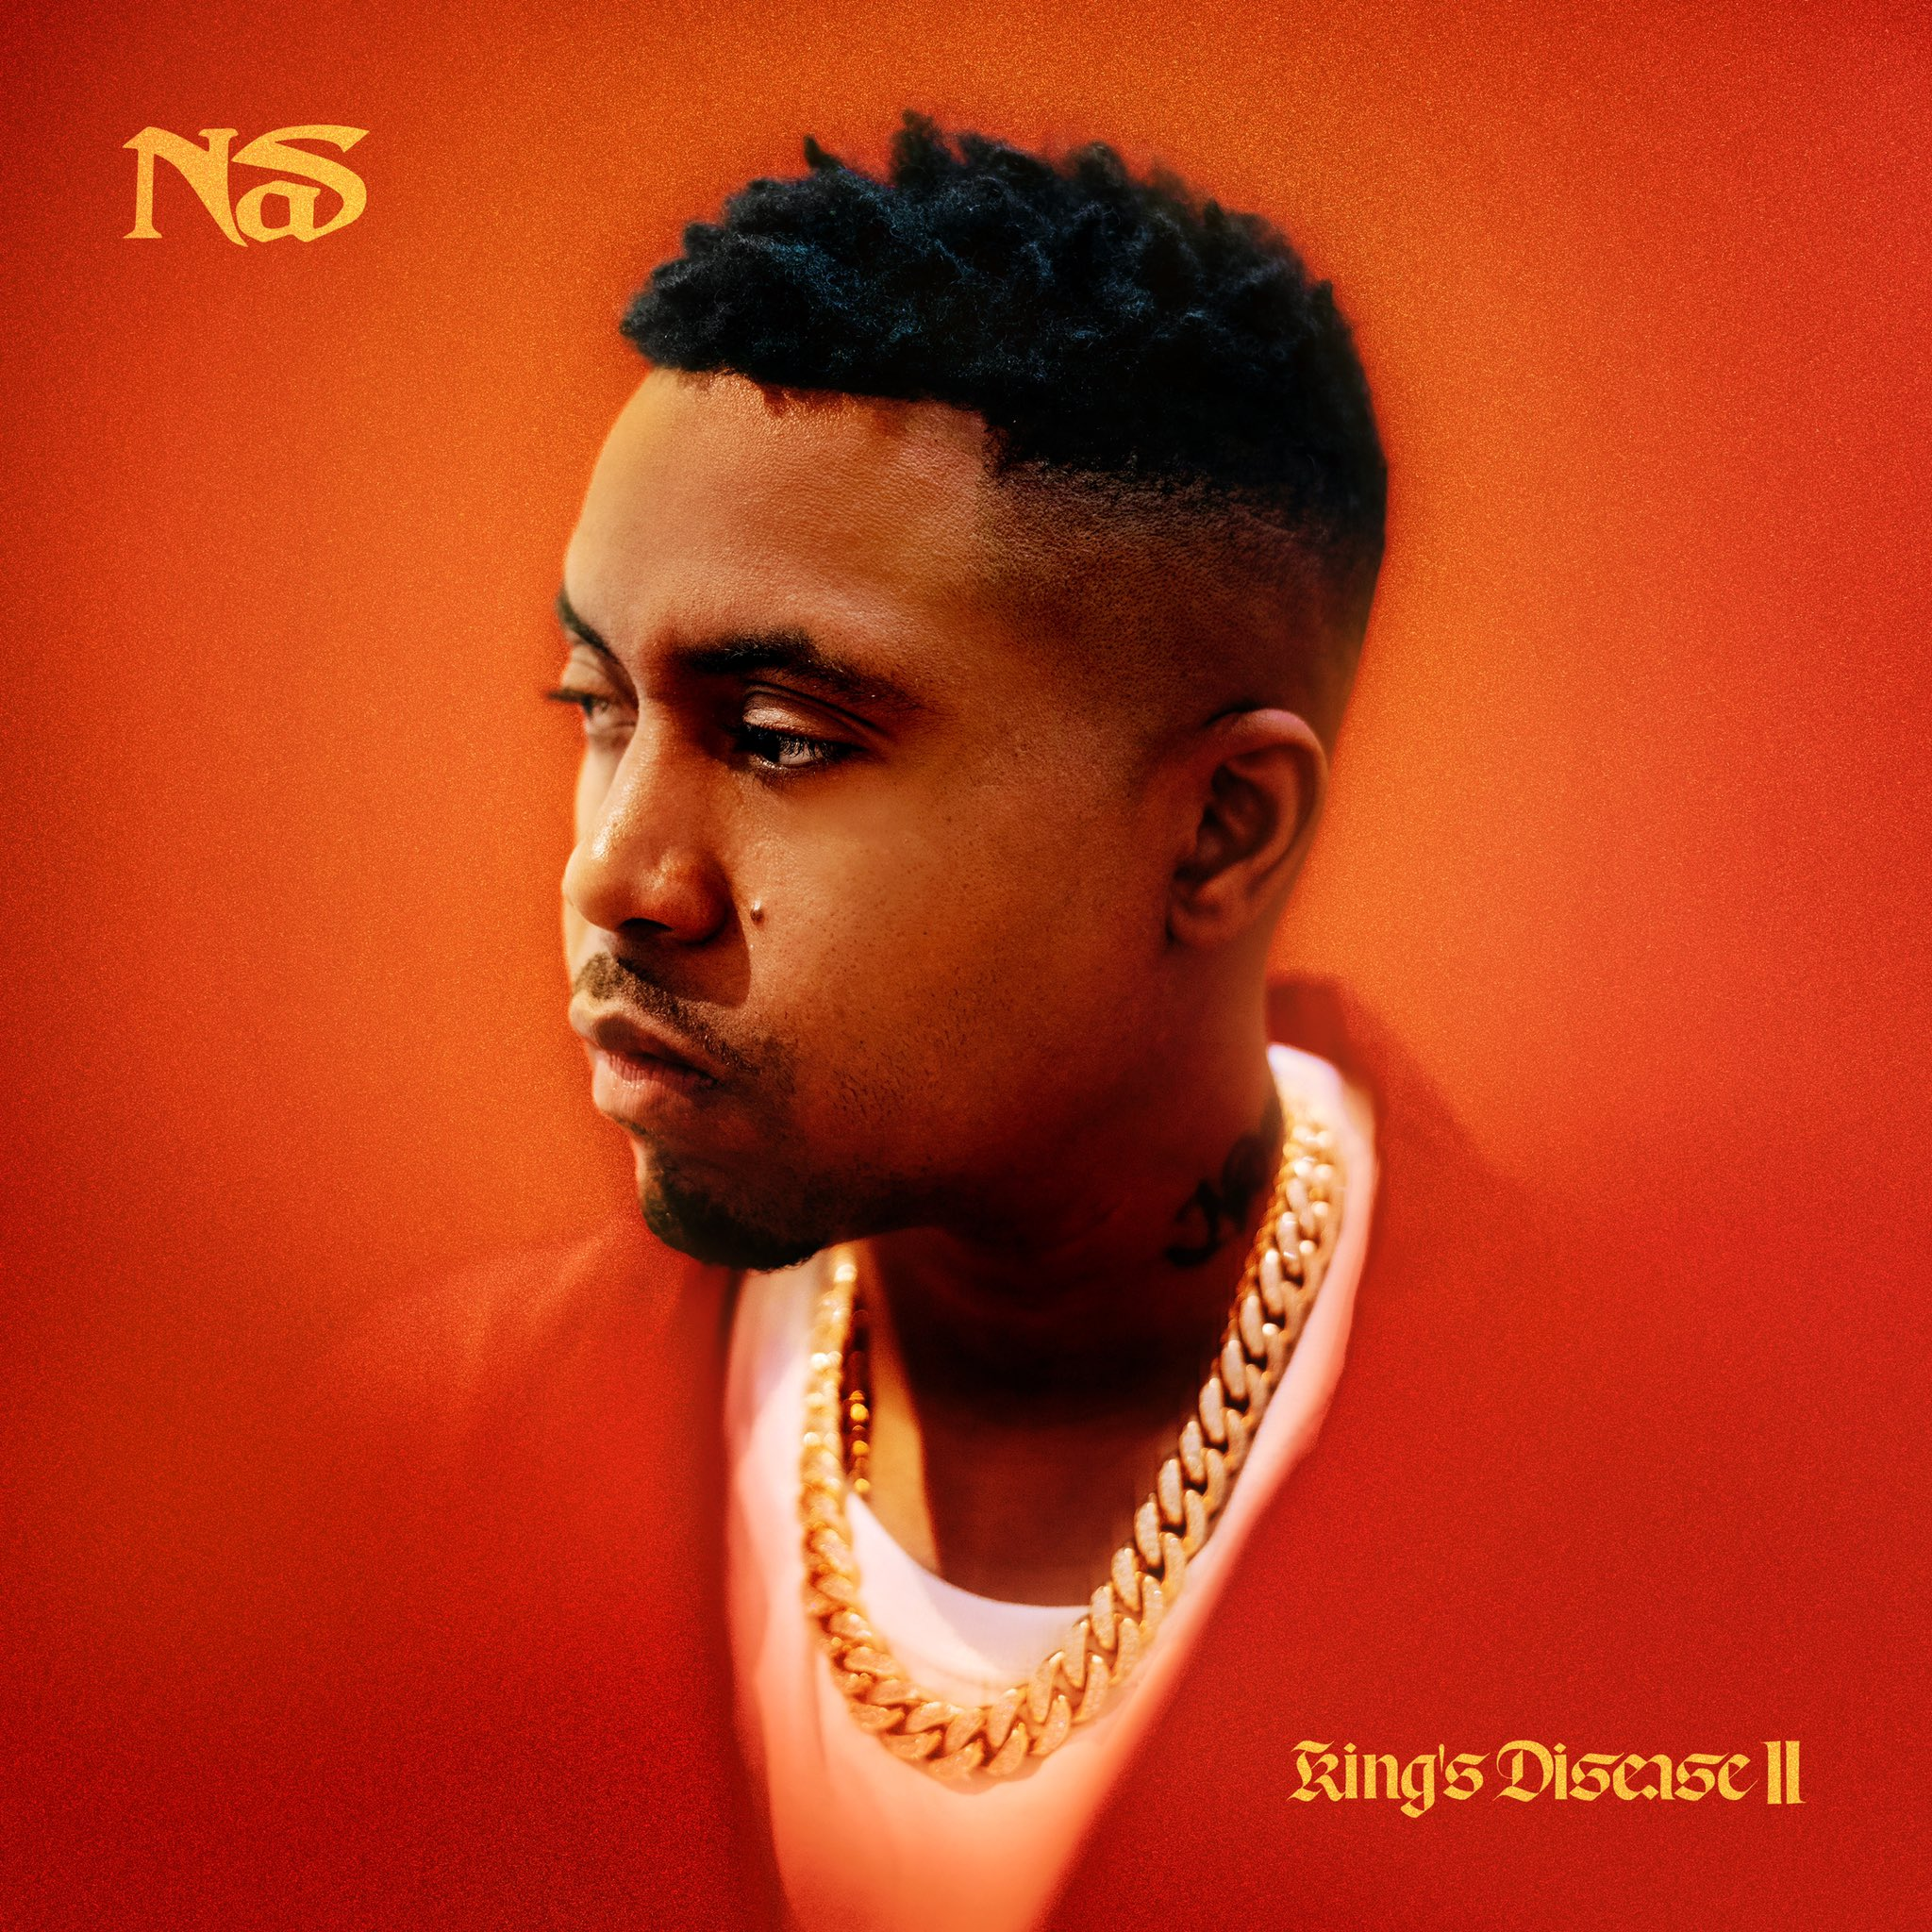 The source |  Nas plans to eliminate King's Disease II on August 6